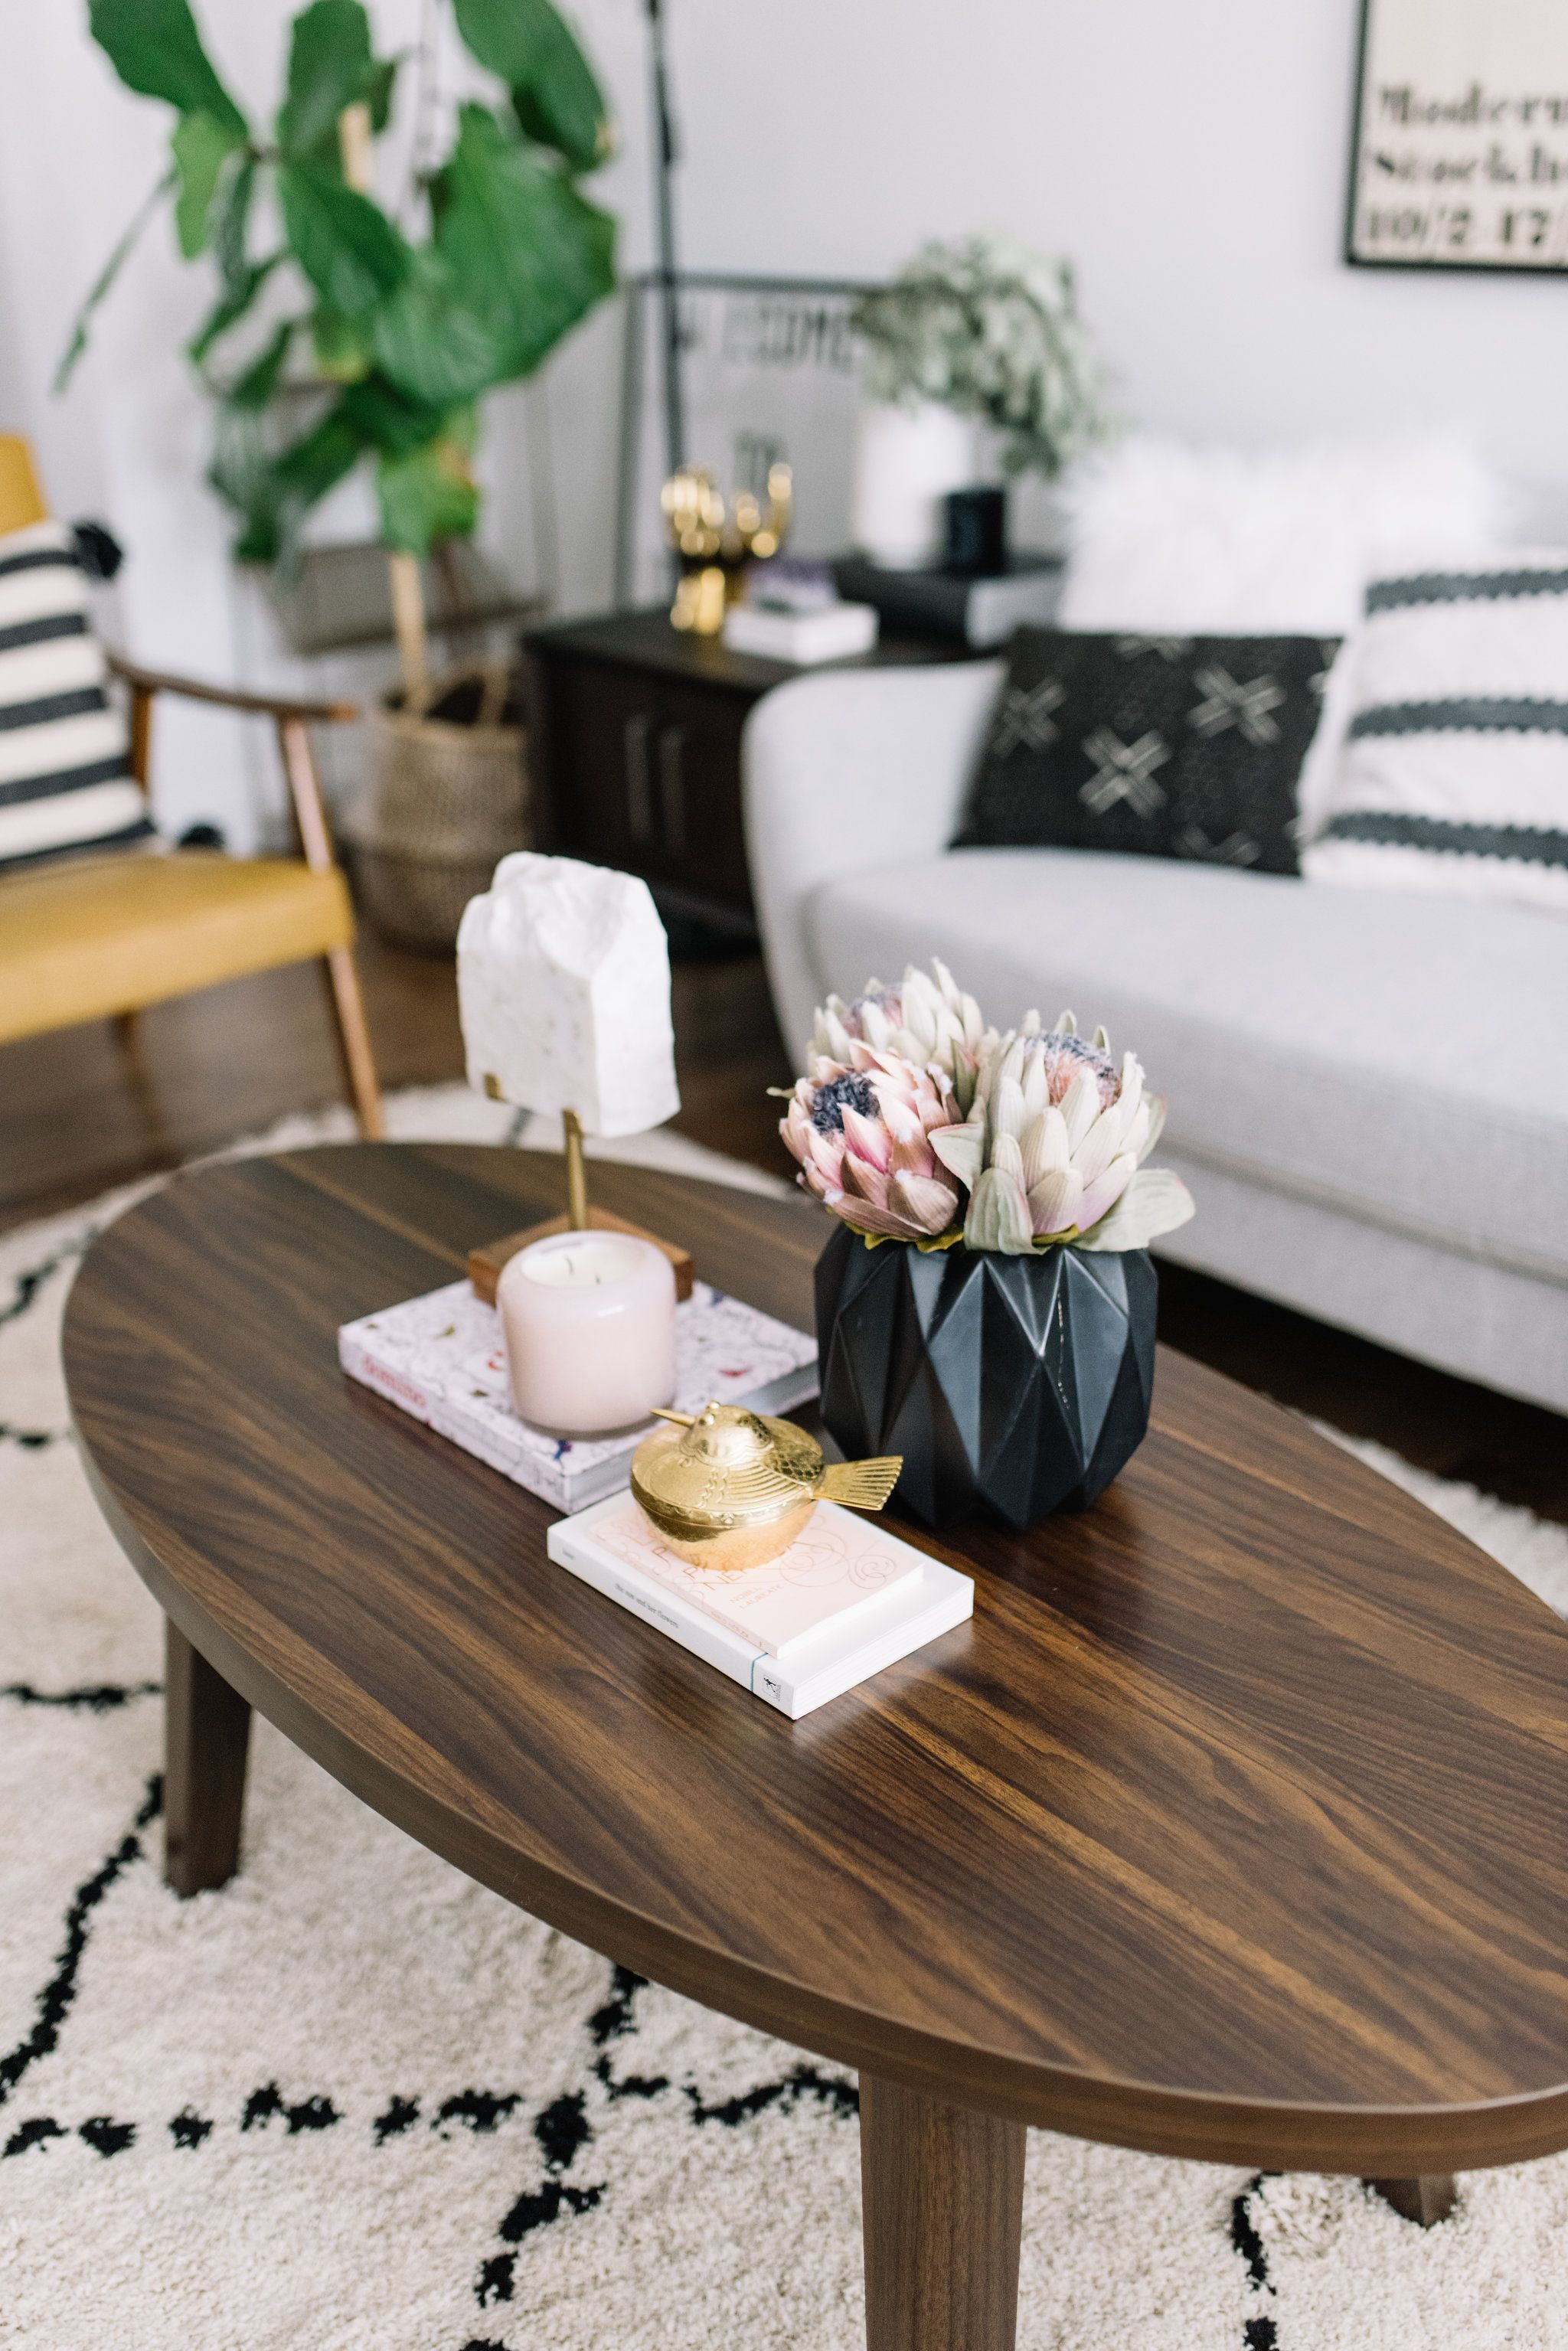 Coffee Table Styling 101 204 Park Coffee Table Living Room Coffee Table Decorating Coffee Tables [ 3071 x 2048 Pixel ]